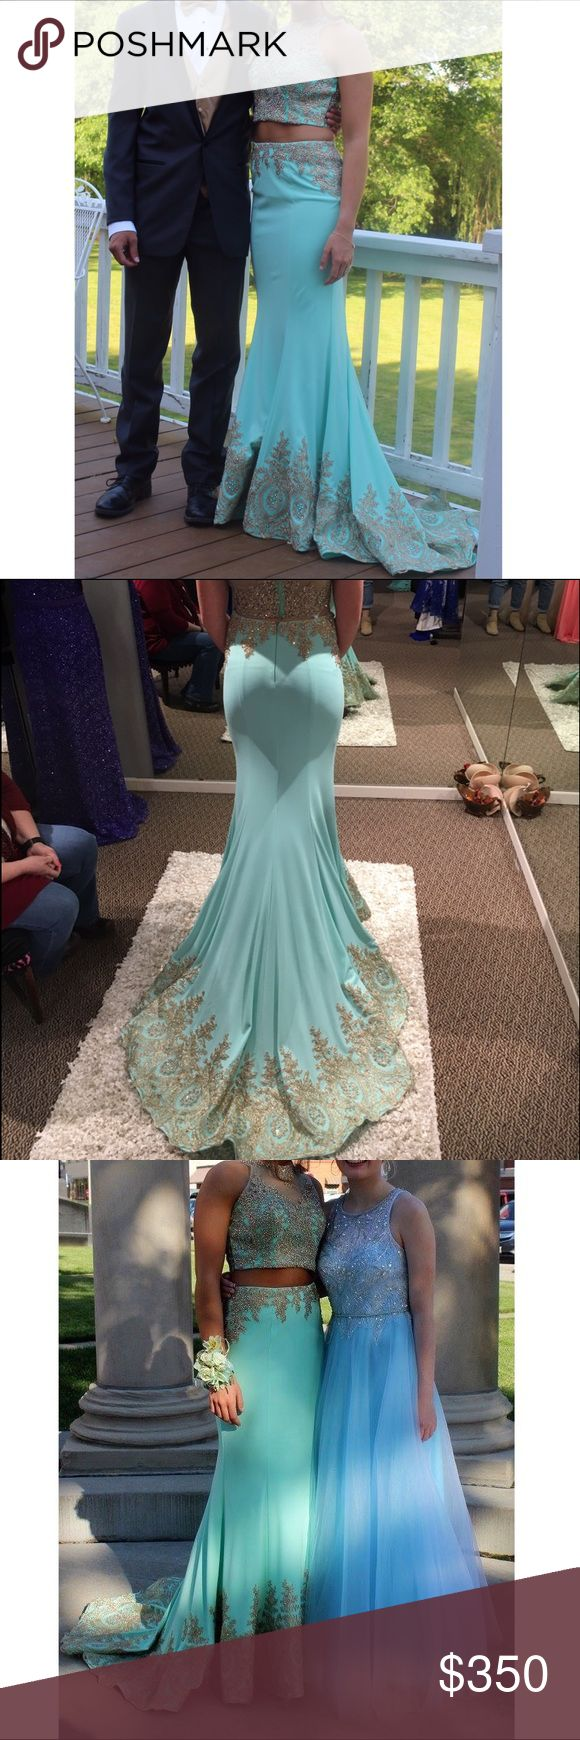 Aqua gold two piece prom dress Gold beaded formal dress, size 6, no alterations, good condition, flexible with price, please feel free ask questions! Dress is made by Tiffany, not Sherri hill Sherri Hill Dresses Prom